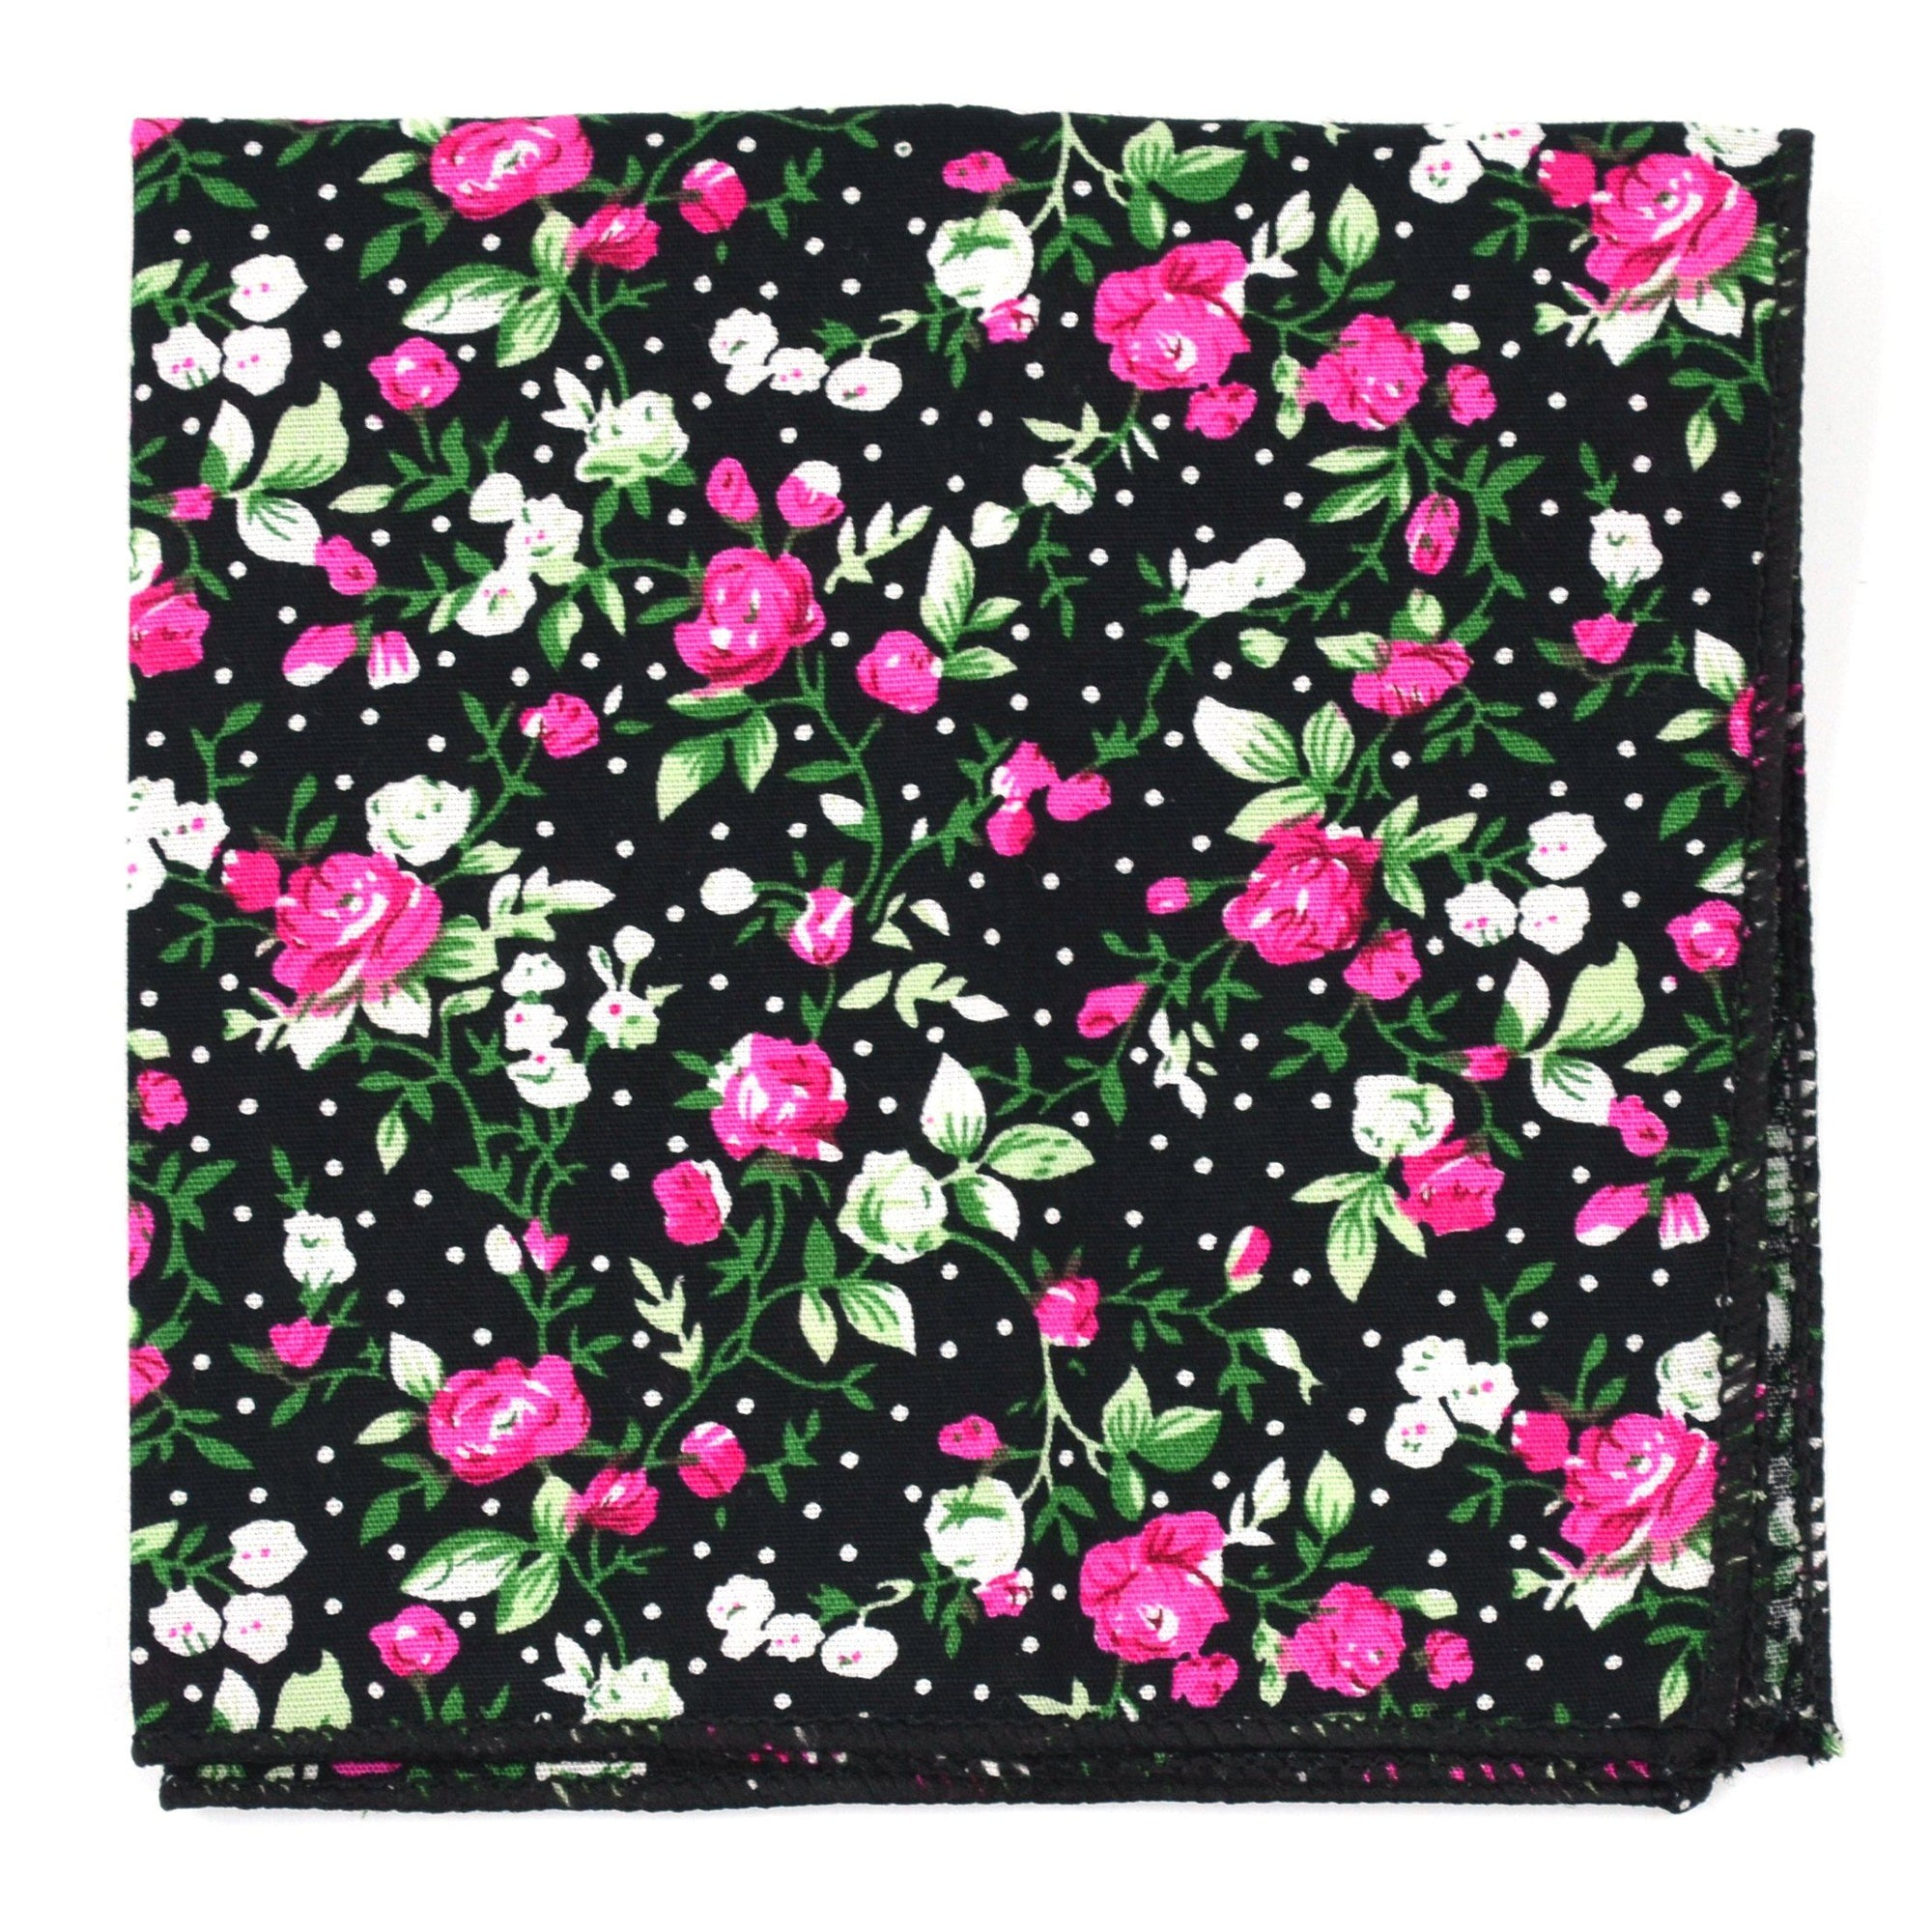 Pocket Square - Floral Black Orchid Pocket Square